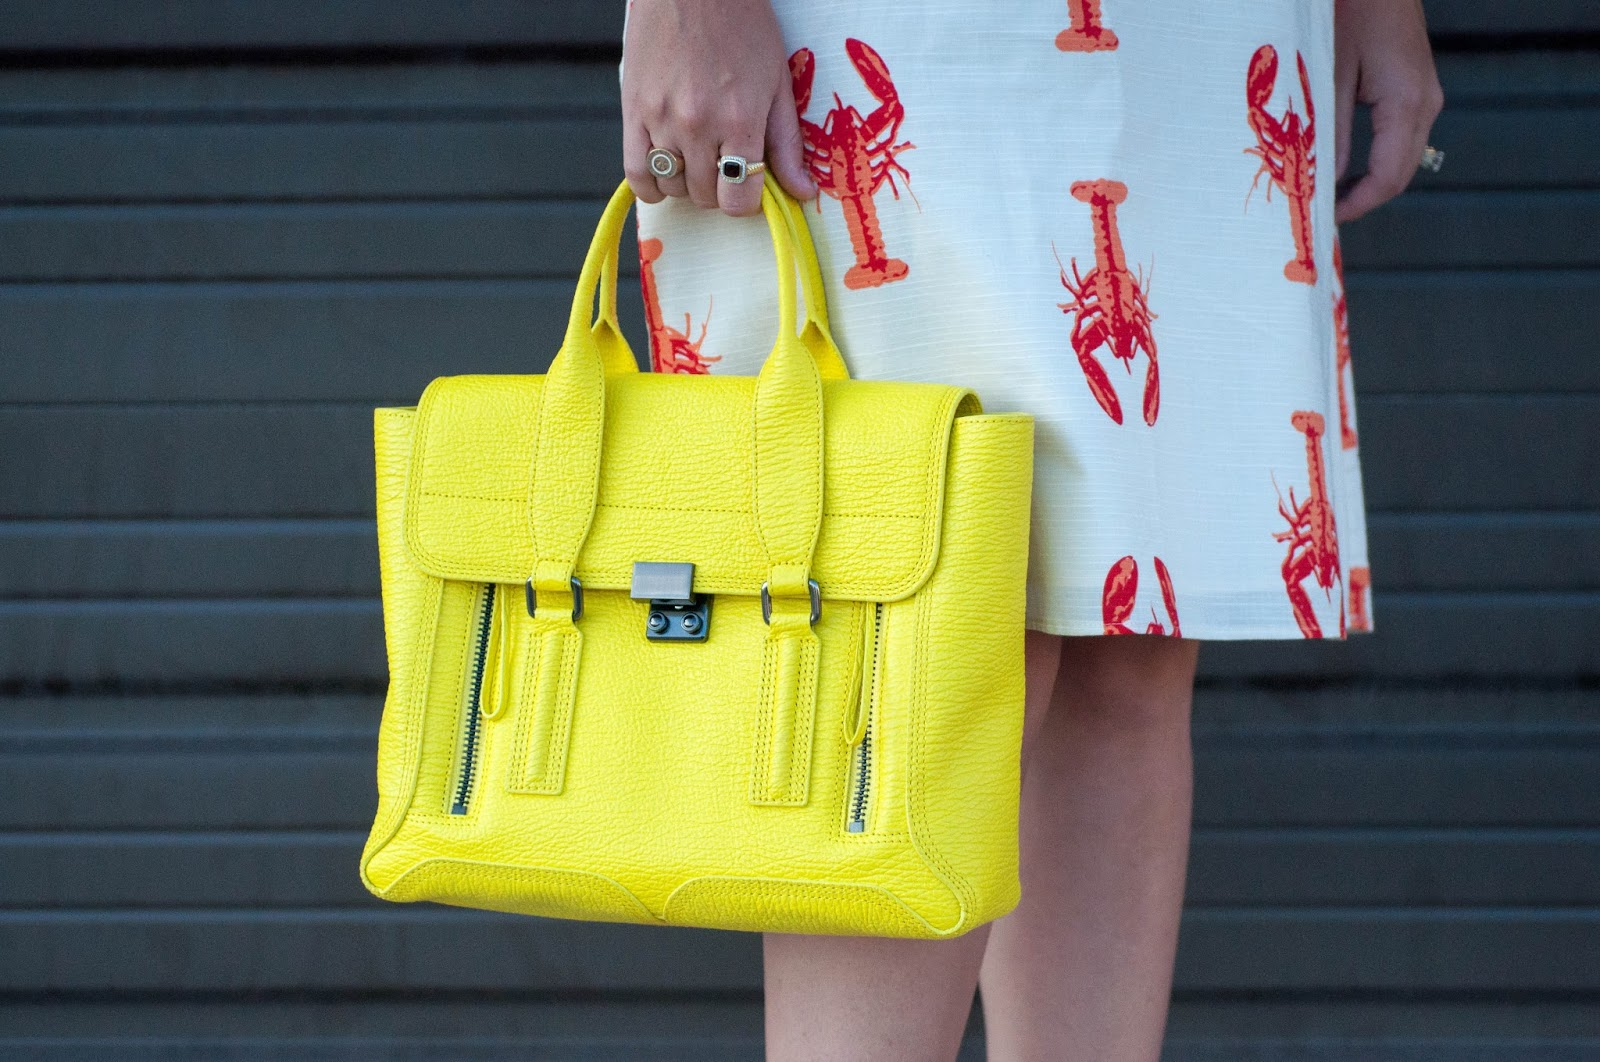 ootd, 3.1 phillip lim pashli satchel, 3.1 phillip lim handbag, yellow purse, lobster dress, ootd